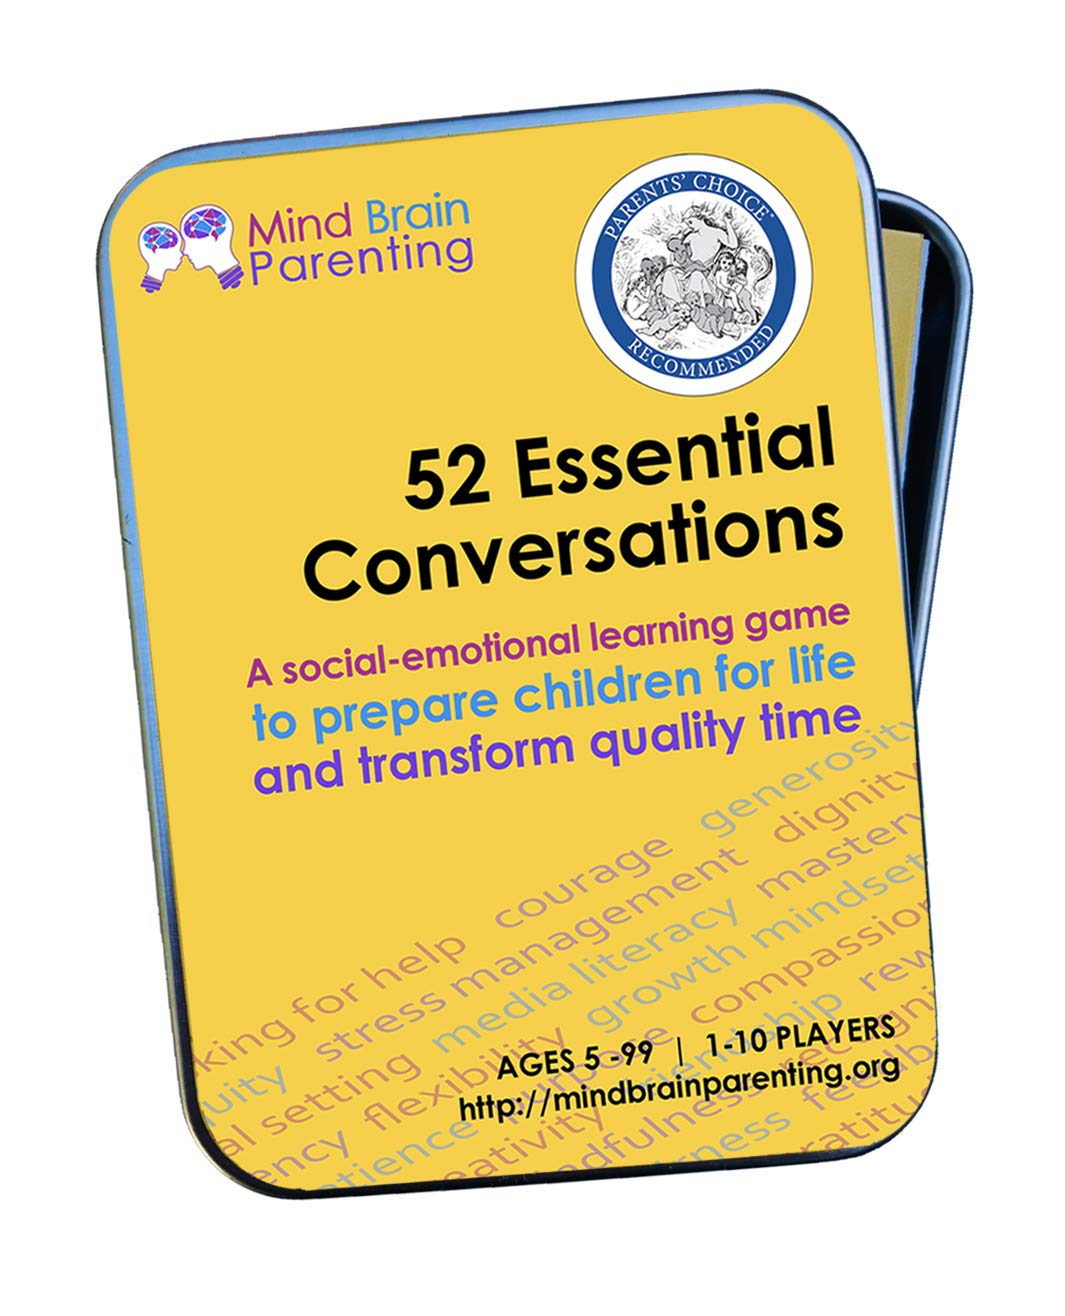 52 Essential Conversations The Life Skills Card Game for Age 5 to Adults Builds Social Emotional Critical Thinking Growth Mindset Vocabulary Skills Created by Harvard Educators